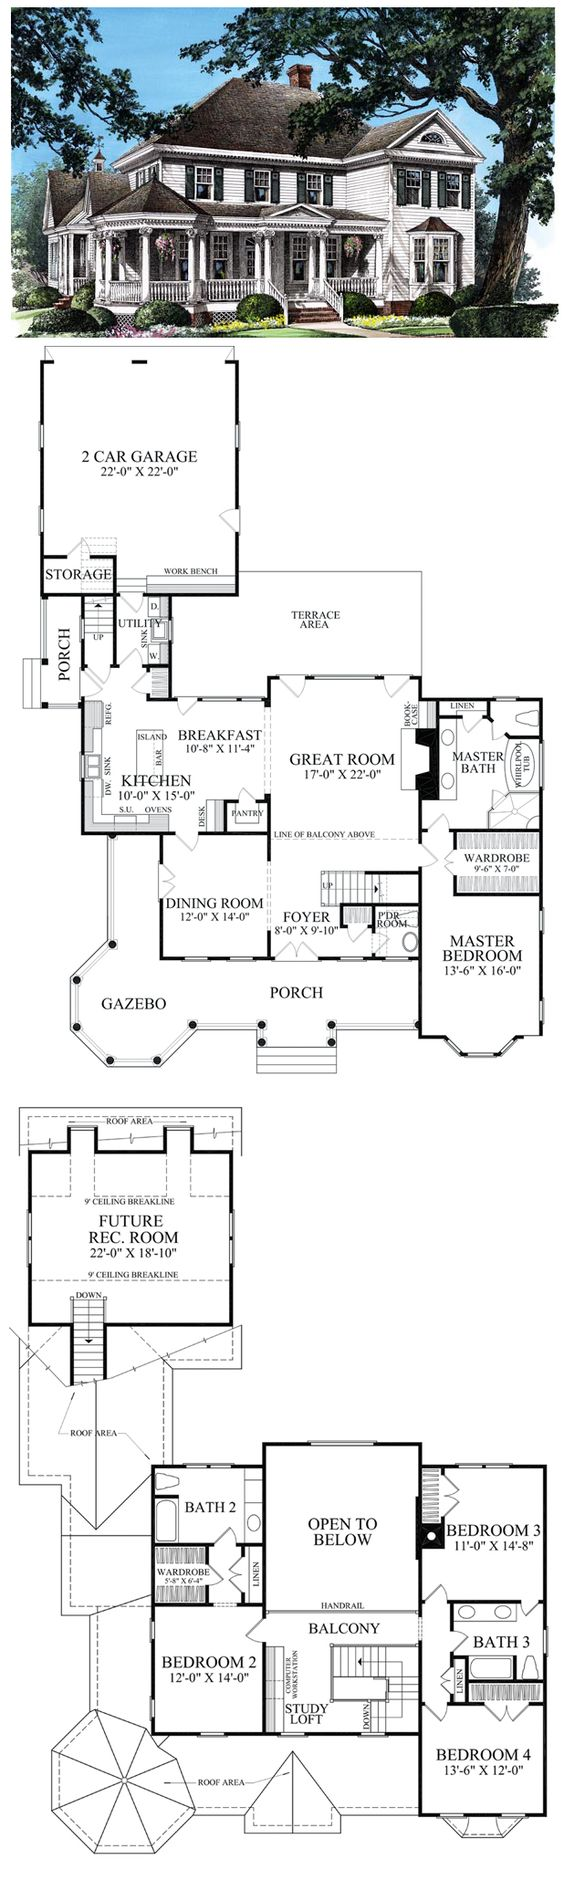 Colonial farmhouse southern victorian house plan 86280 for Two story victorian house plans